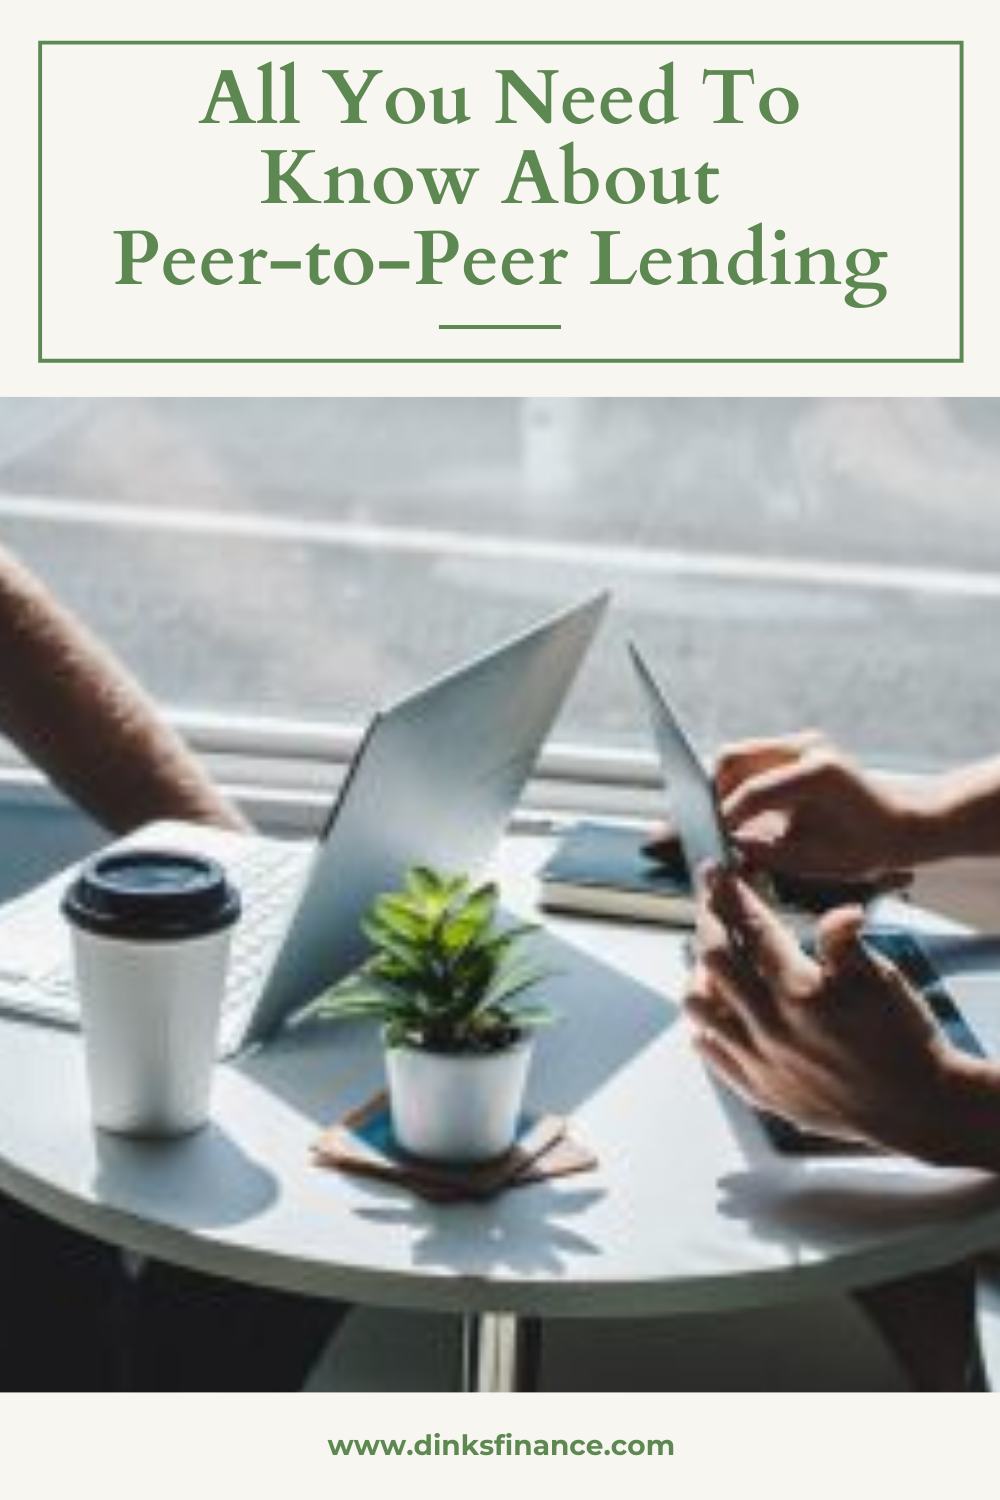 All You Need To Know About Peer-to-Peer Lending